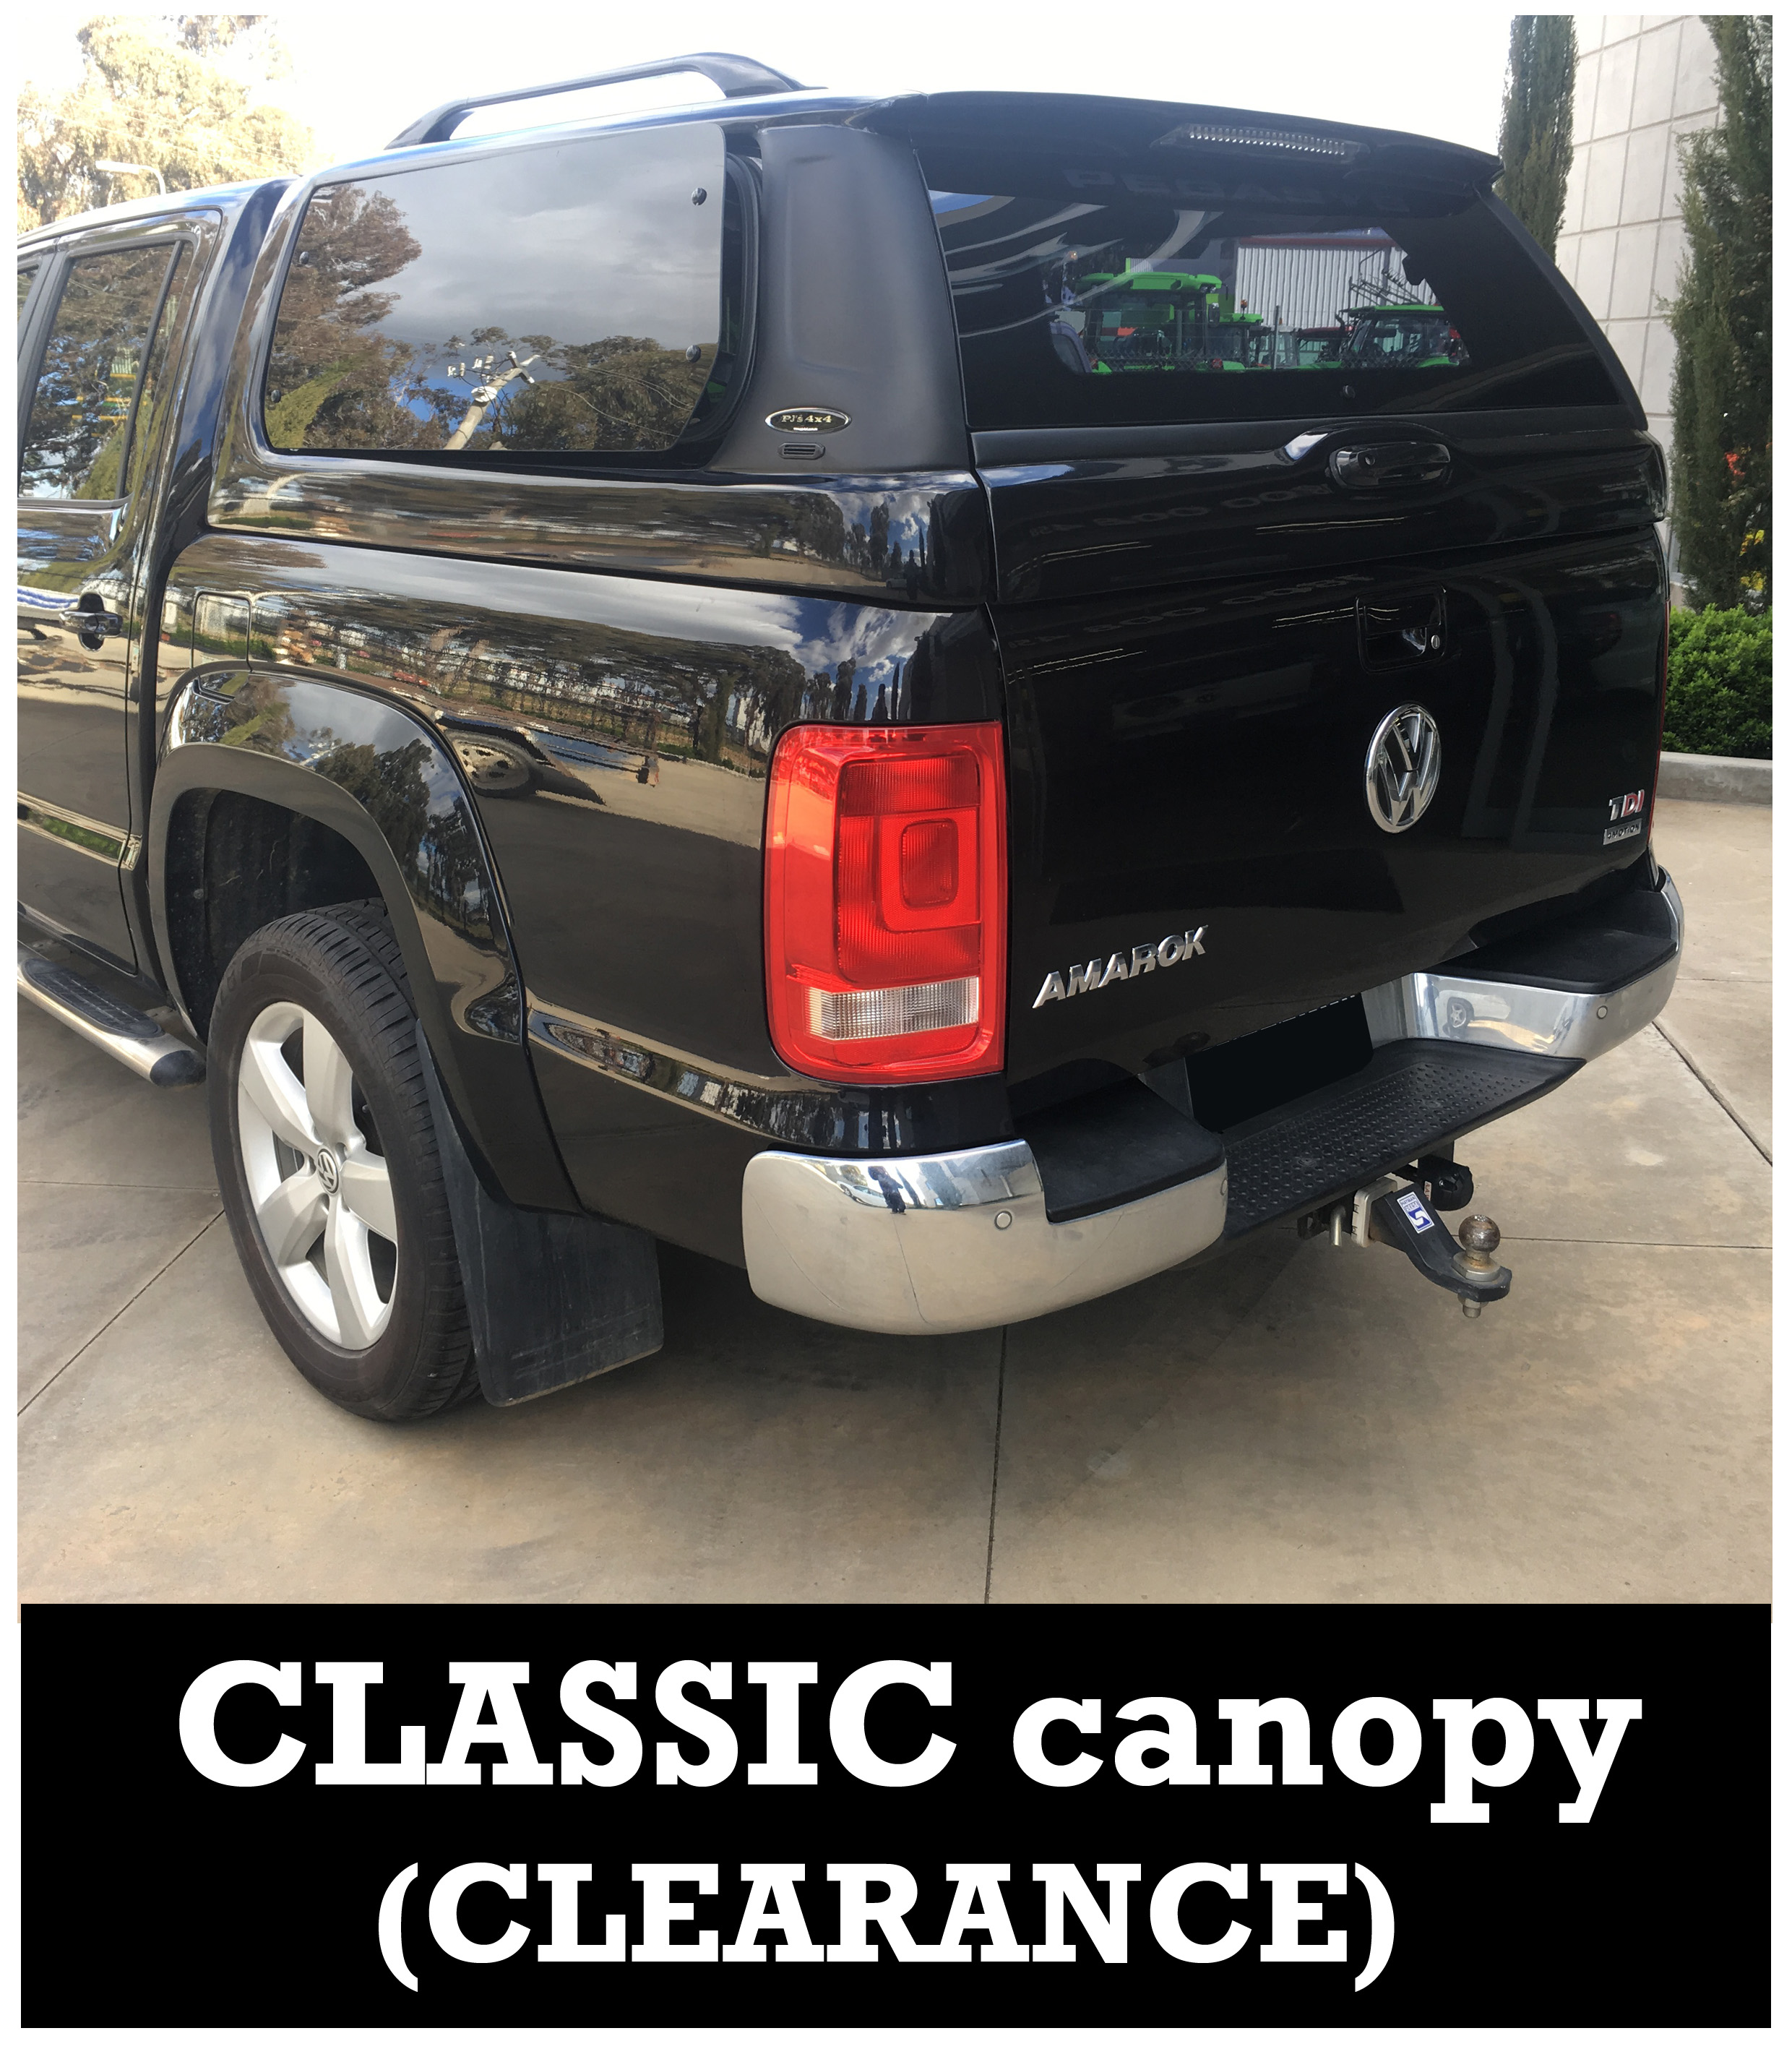 WEbsite_Amarok_CLASSIC CLEARANCE Canopy_Thumbnail_edited-1.jpg